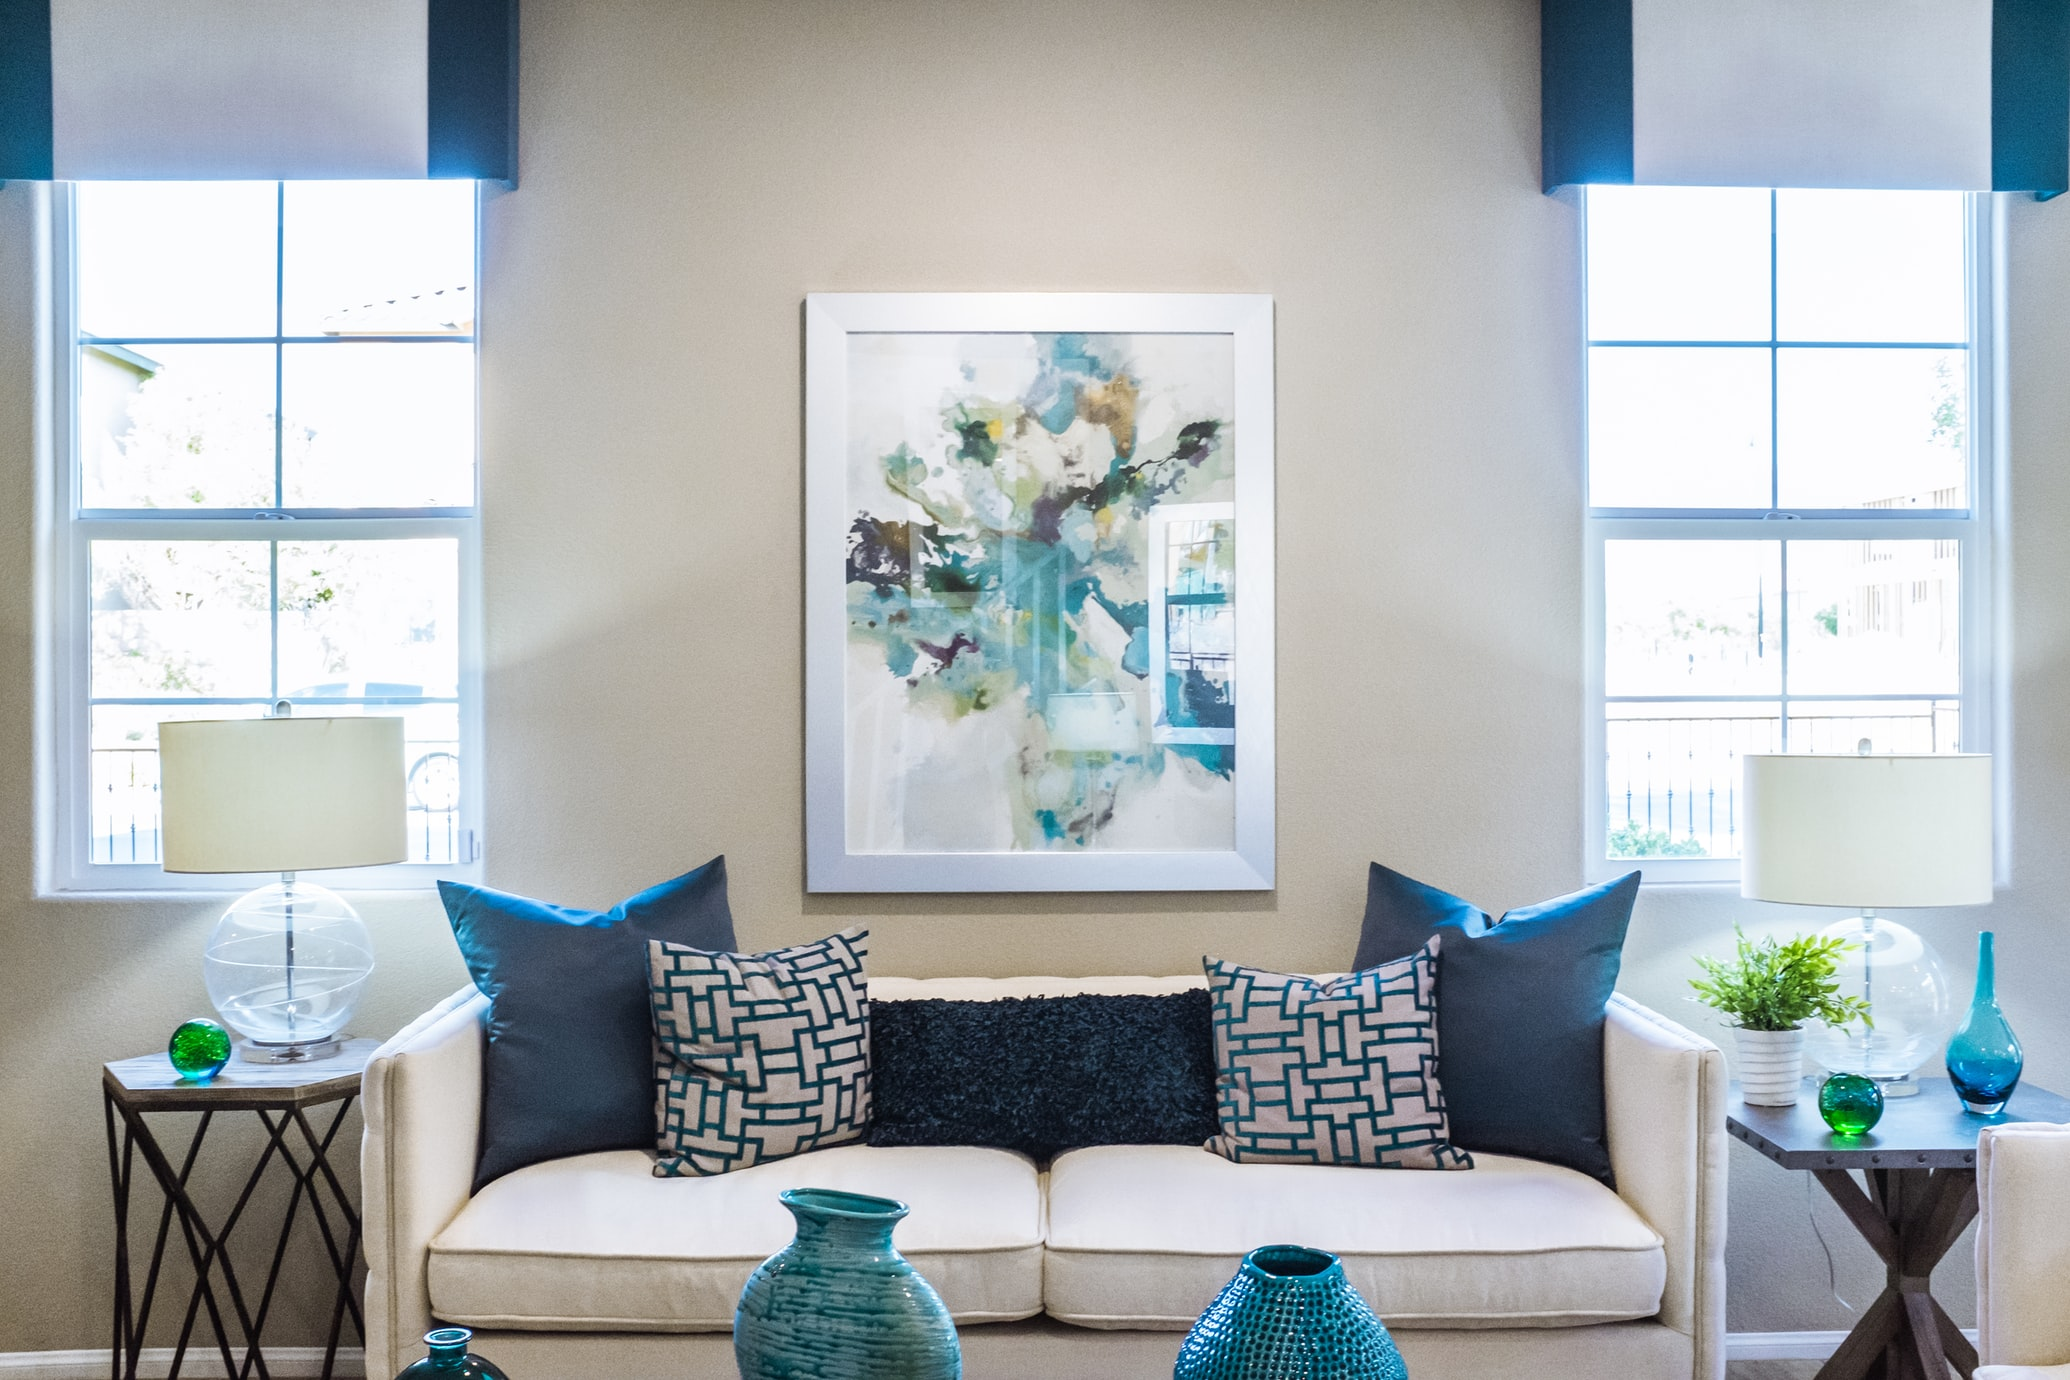 What to Consider When Choosing Wall Decor for Your Home